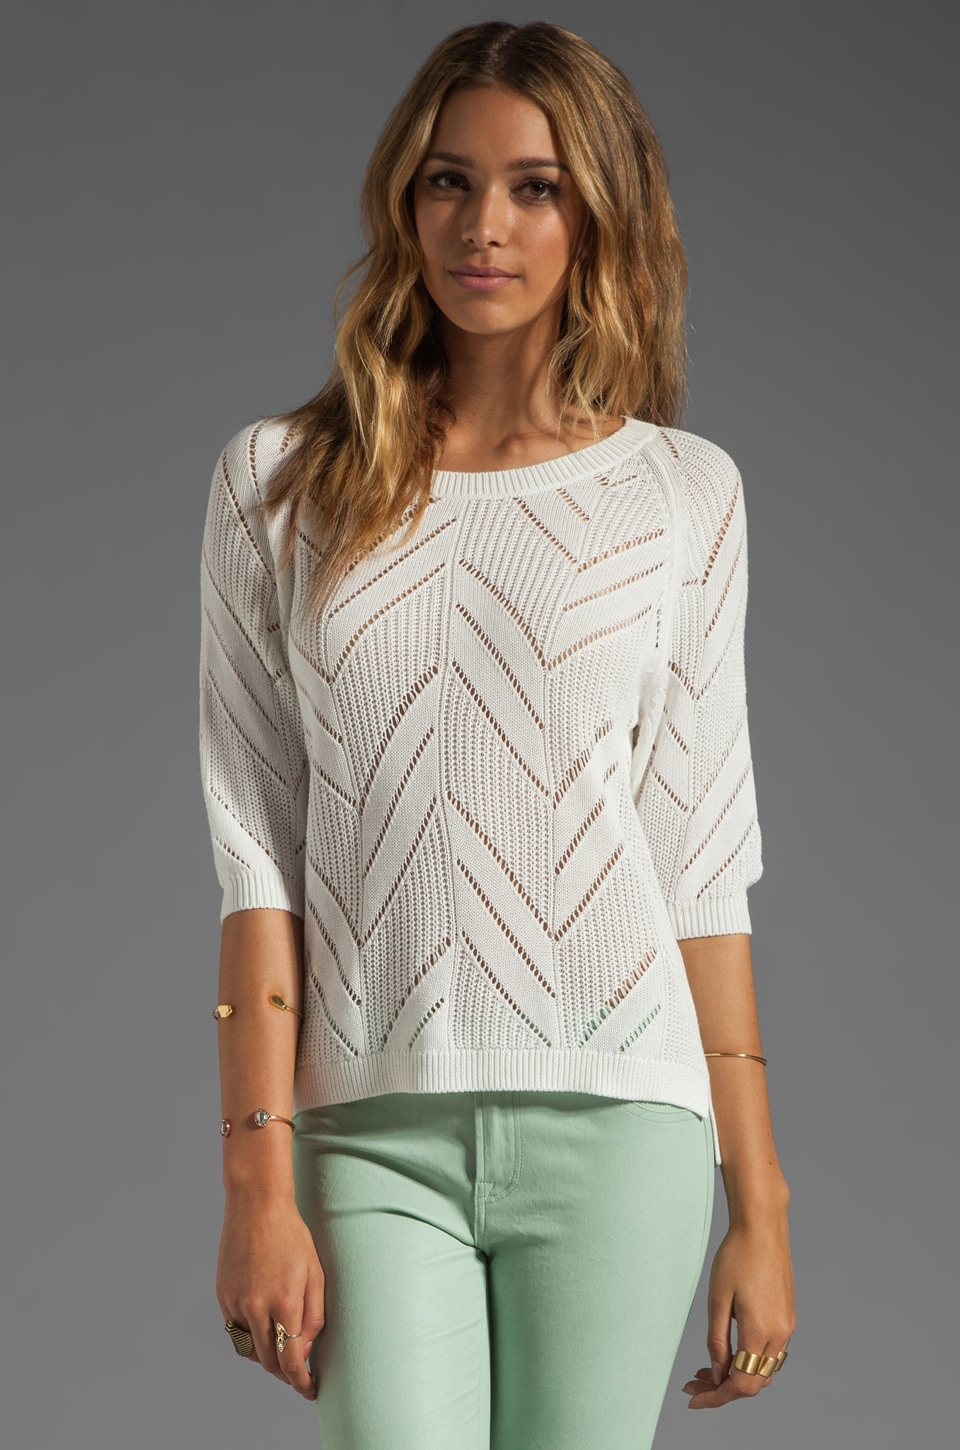 Trina Turk Oneil Sweater in Whitewash